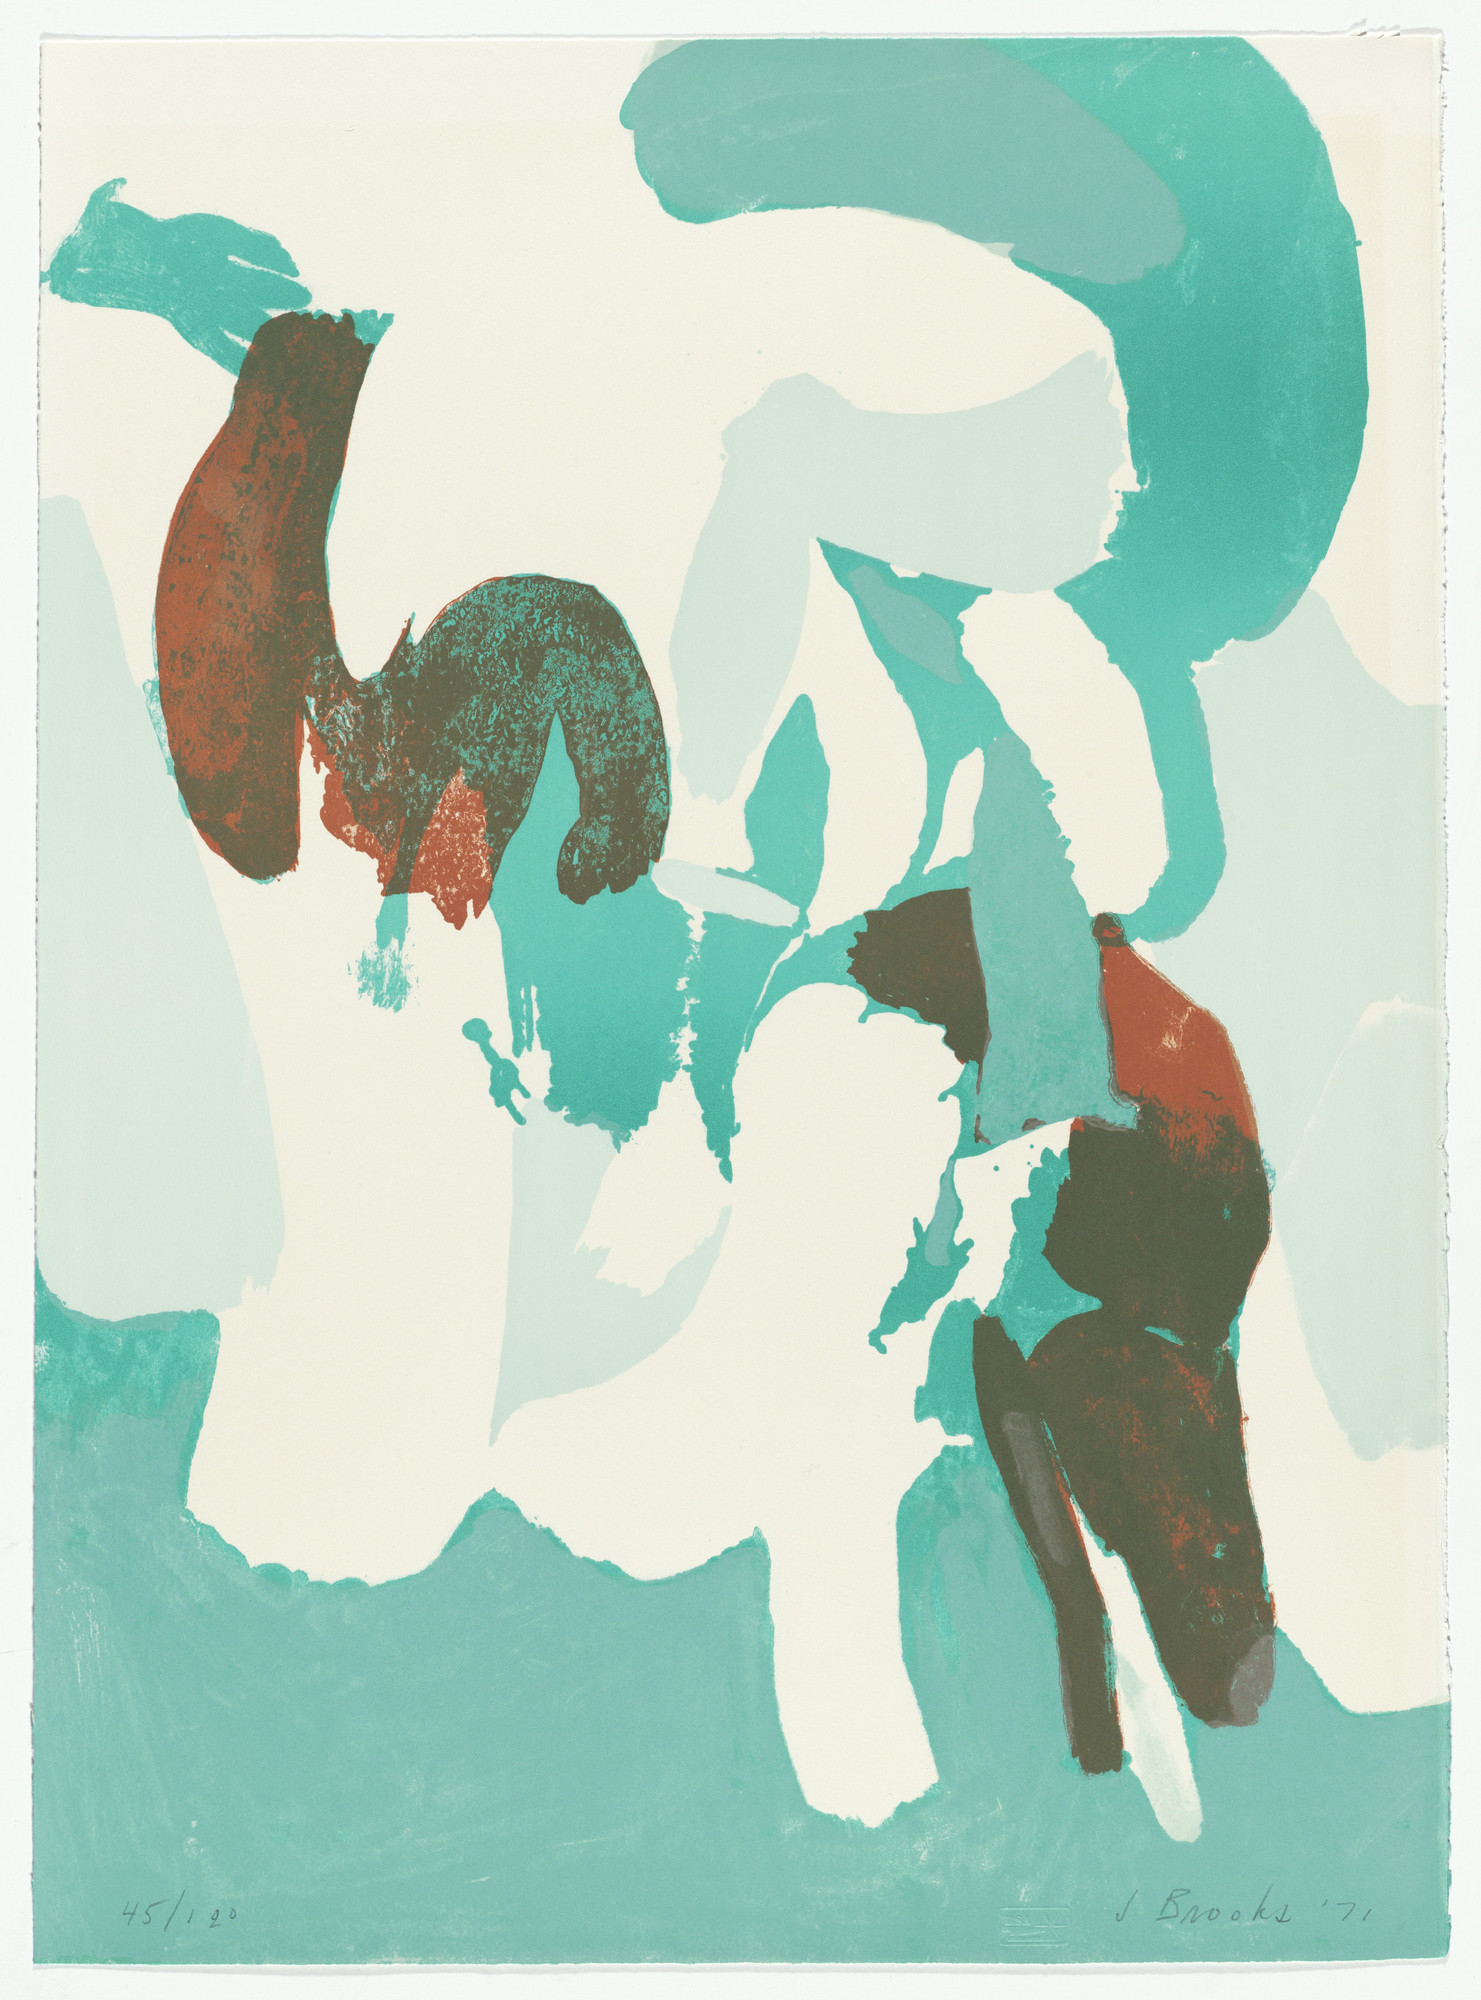 James Brooks. The Springs from Ten Lithographs by Ten Artists. 1971